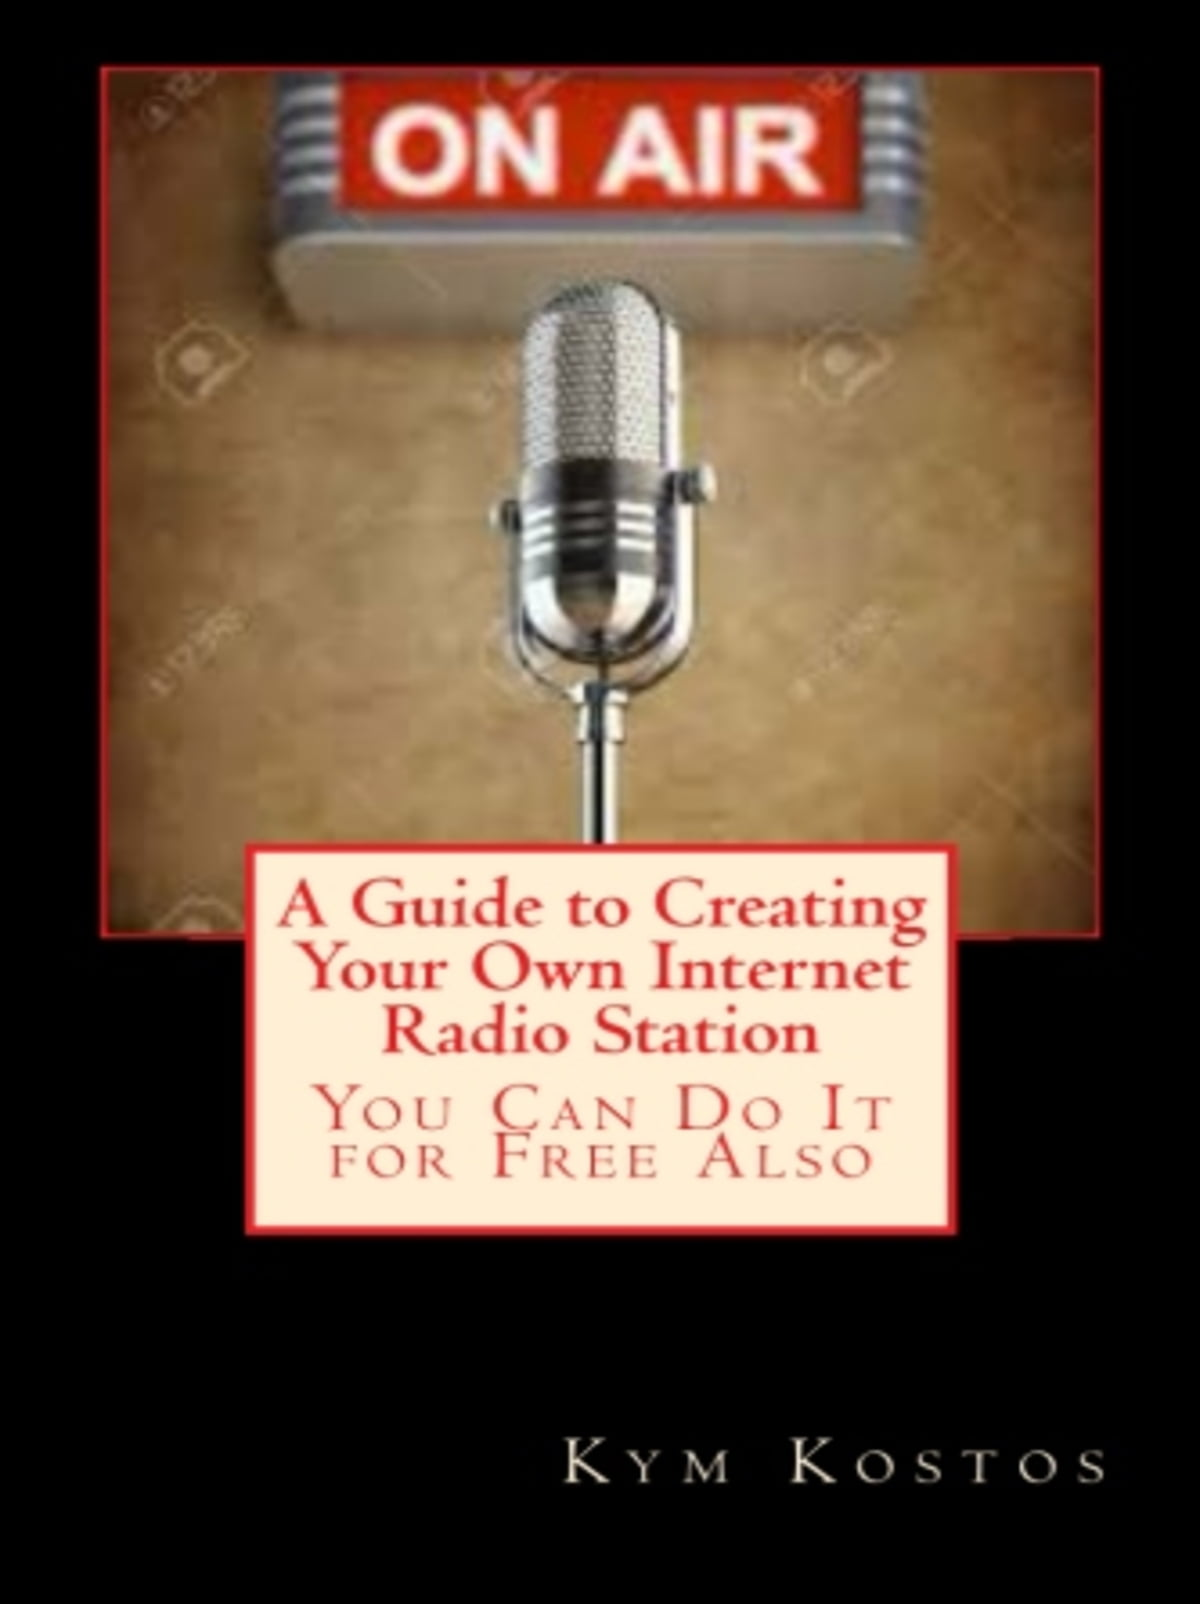 A Guide to Creating Your Own Internet Radio Station eBook by